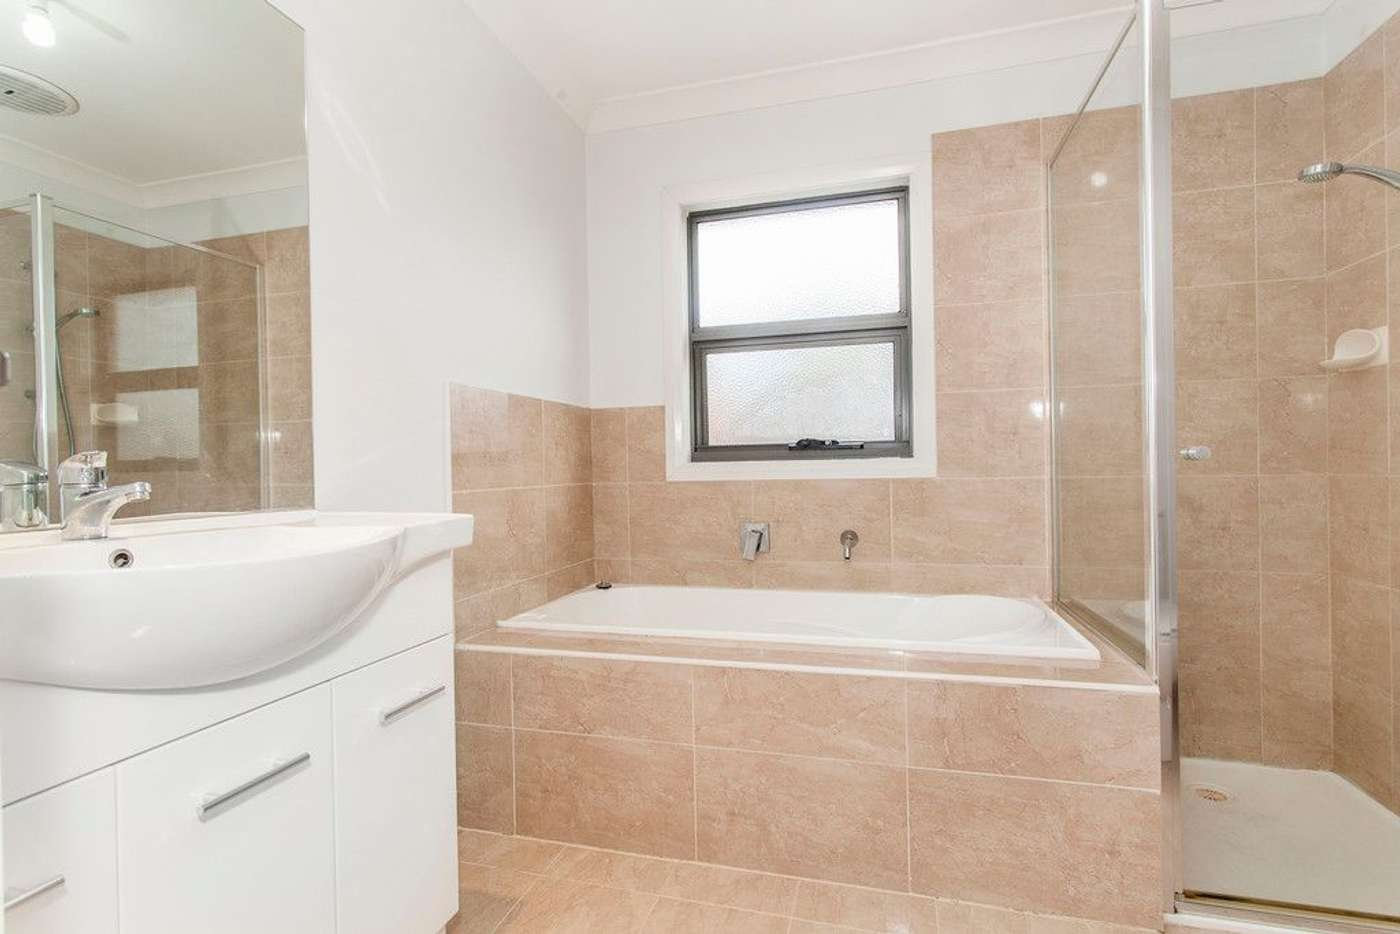 Sixth view of Homely townhouse listing, 1/7 Seventh Avenue, Dandenong VIC 3175